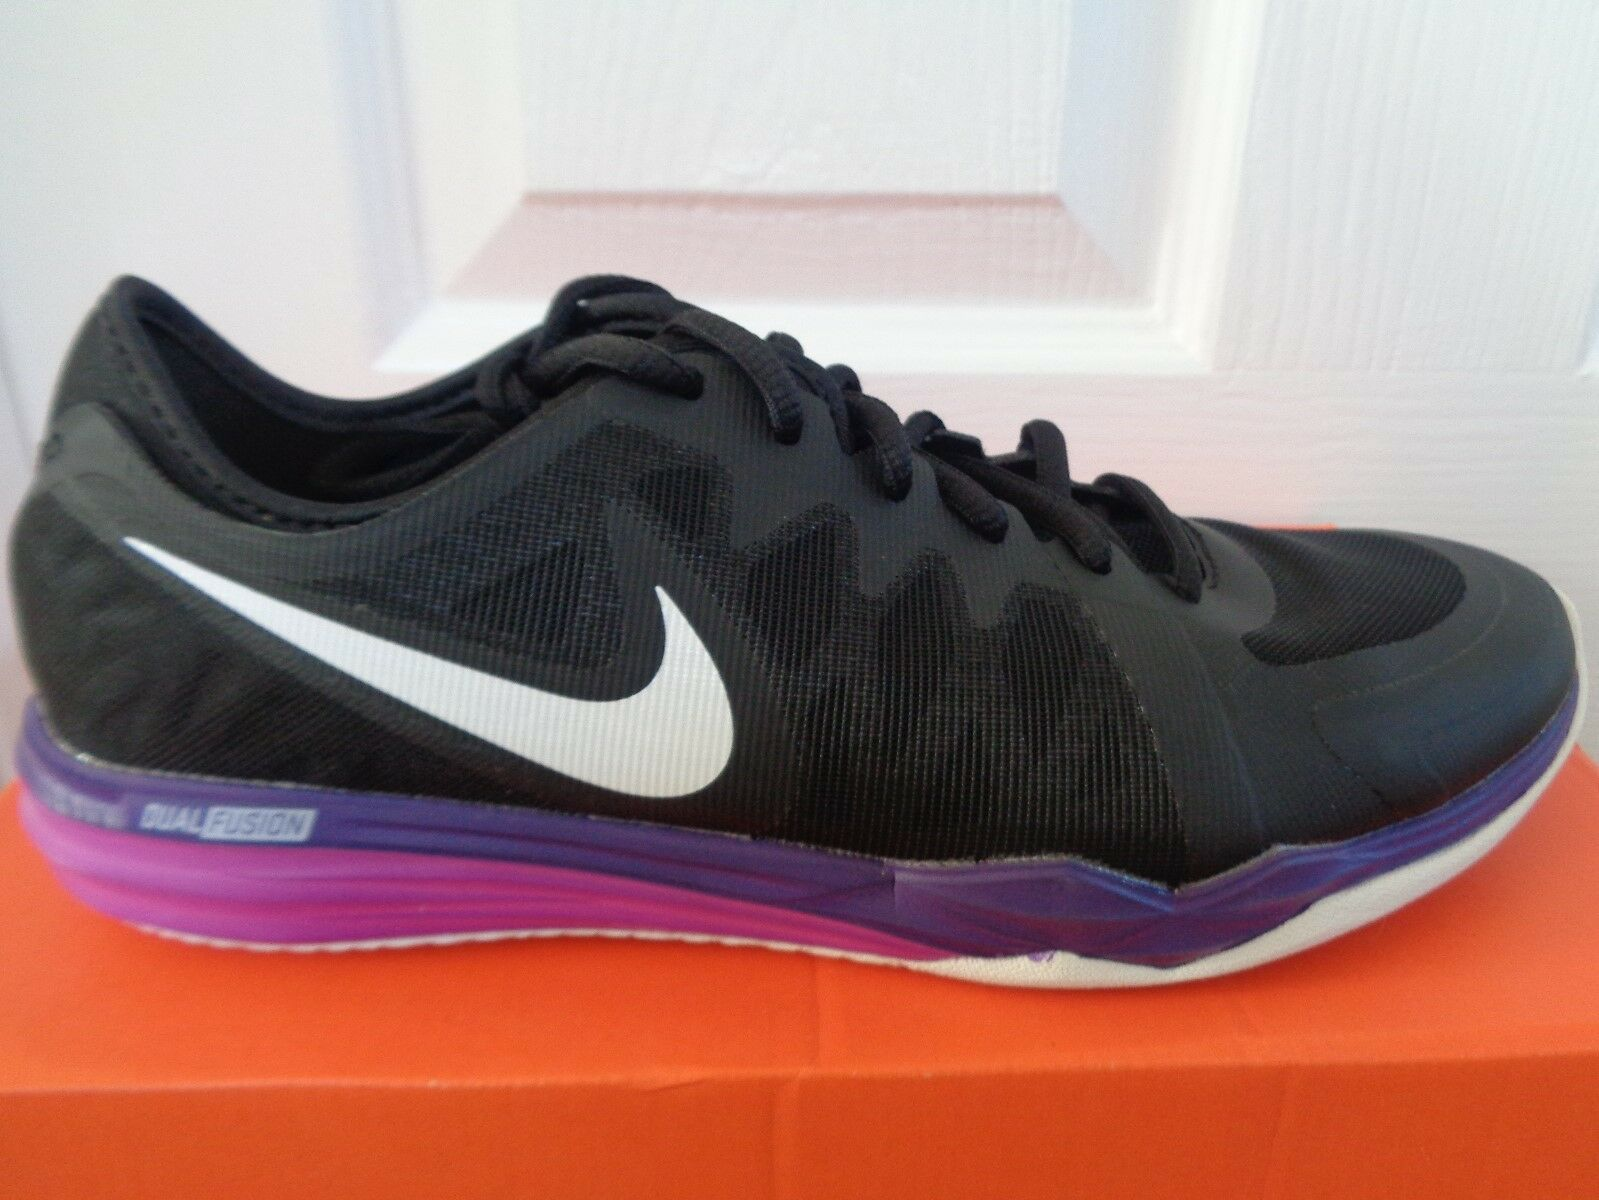 Nike Dual Fusion TR 3  Femme  trainers  chaussures  704940 012 uk 4.5 eu 38 us 7 NEW+BOX